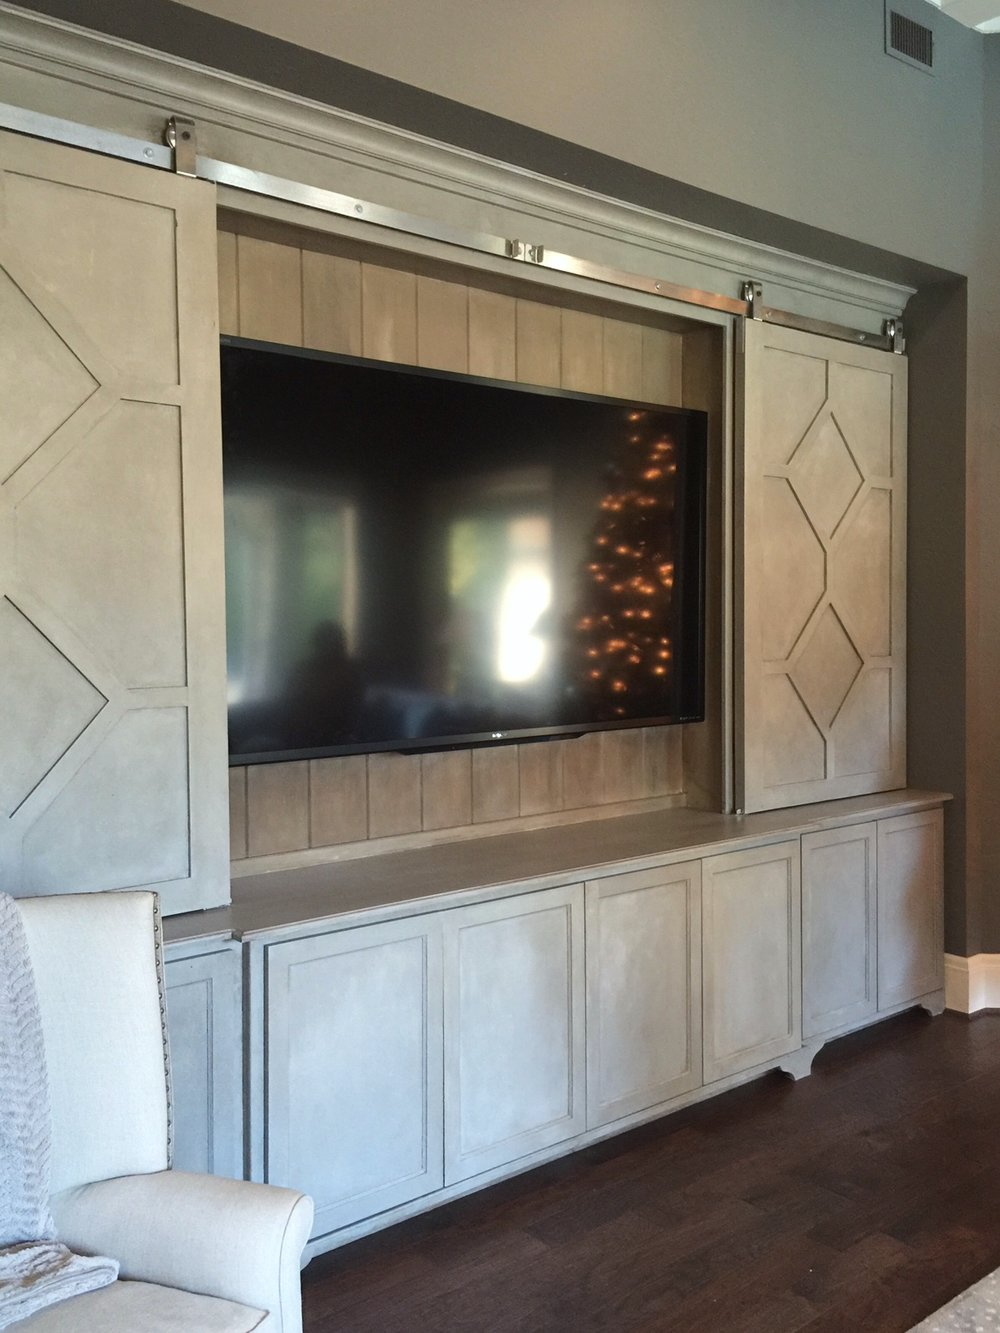 Large TV / Entertainment center with barn doors